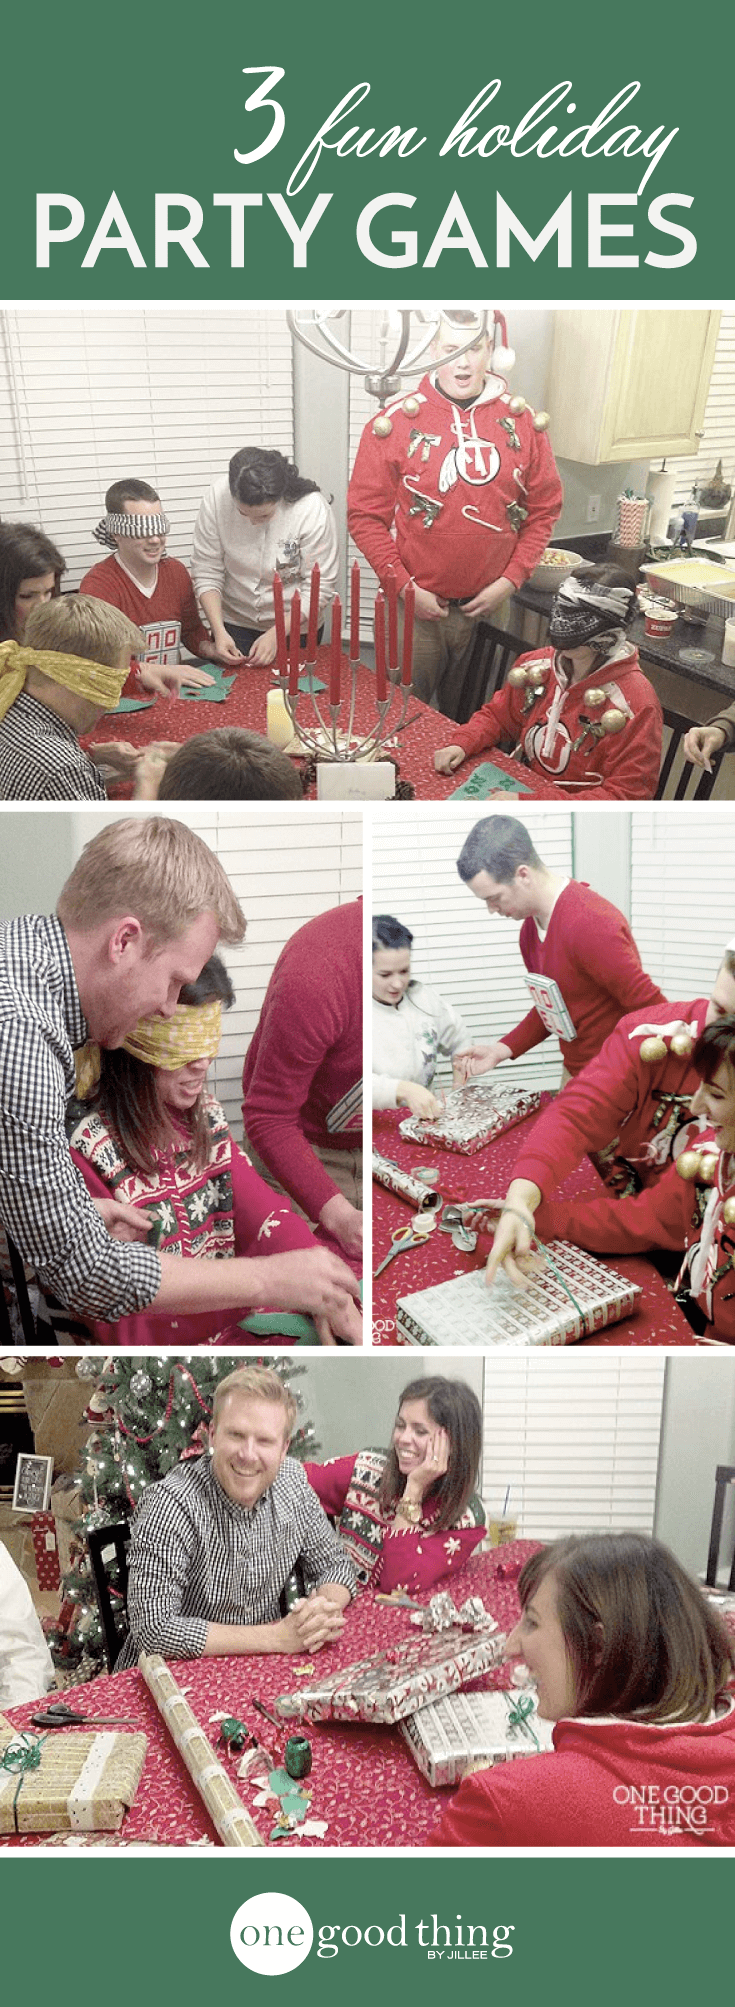 3 Hilarious Games To Liven Up Your Holiday Parties